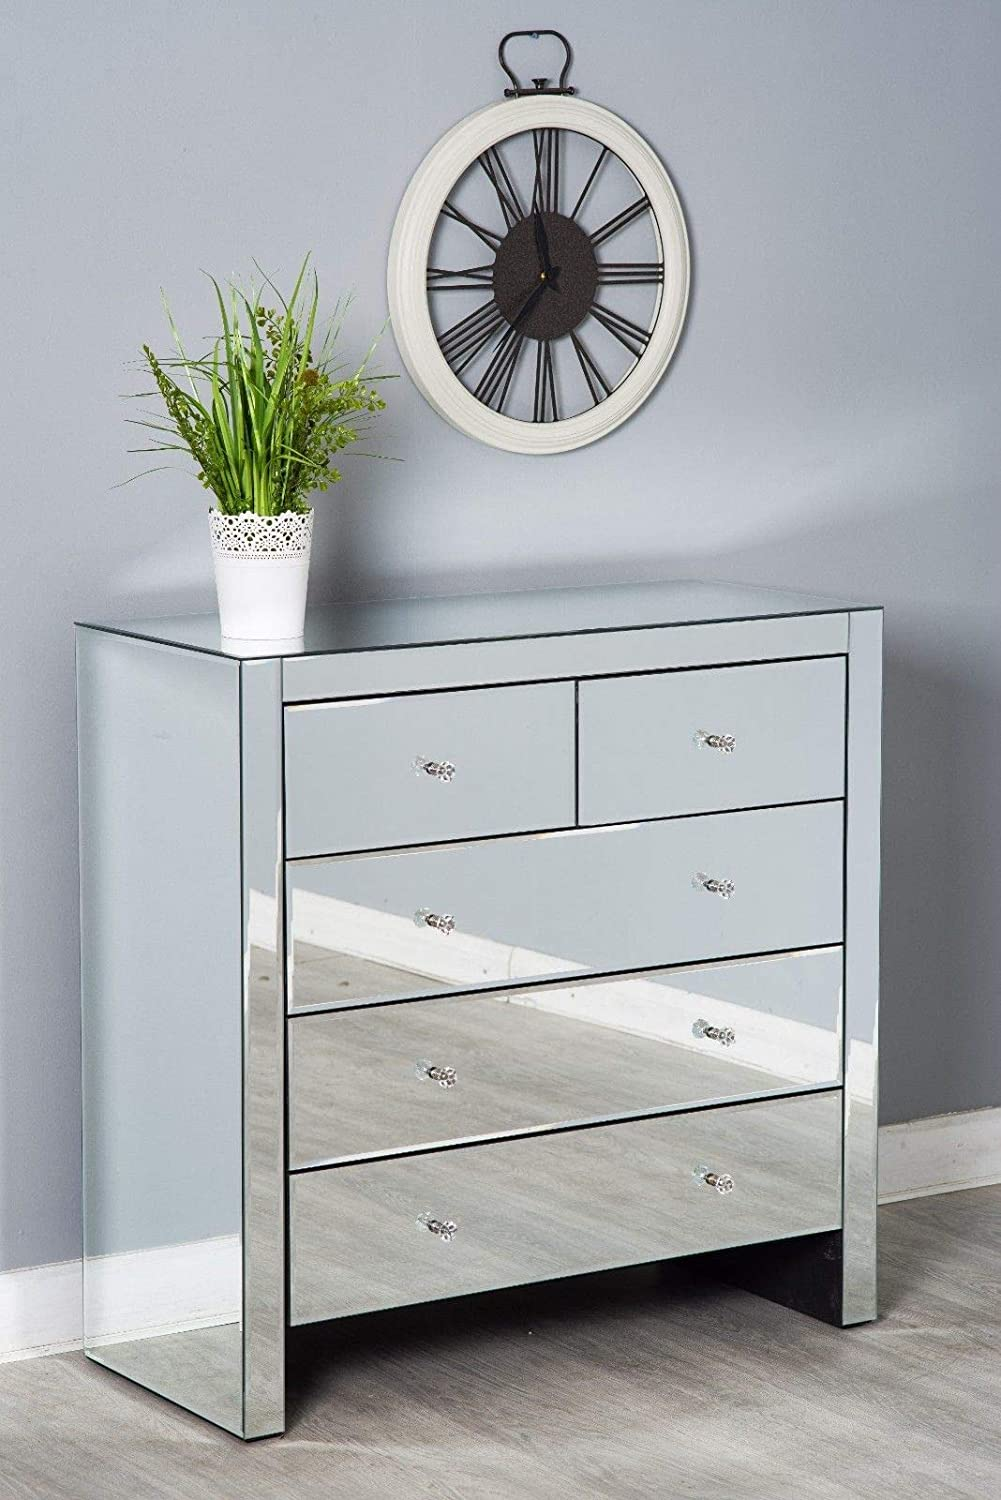 Mirrored bedroom Furniture set Chest of Drawers Bedside ...